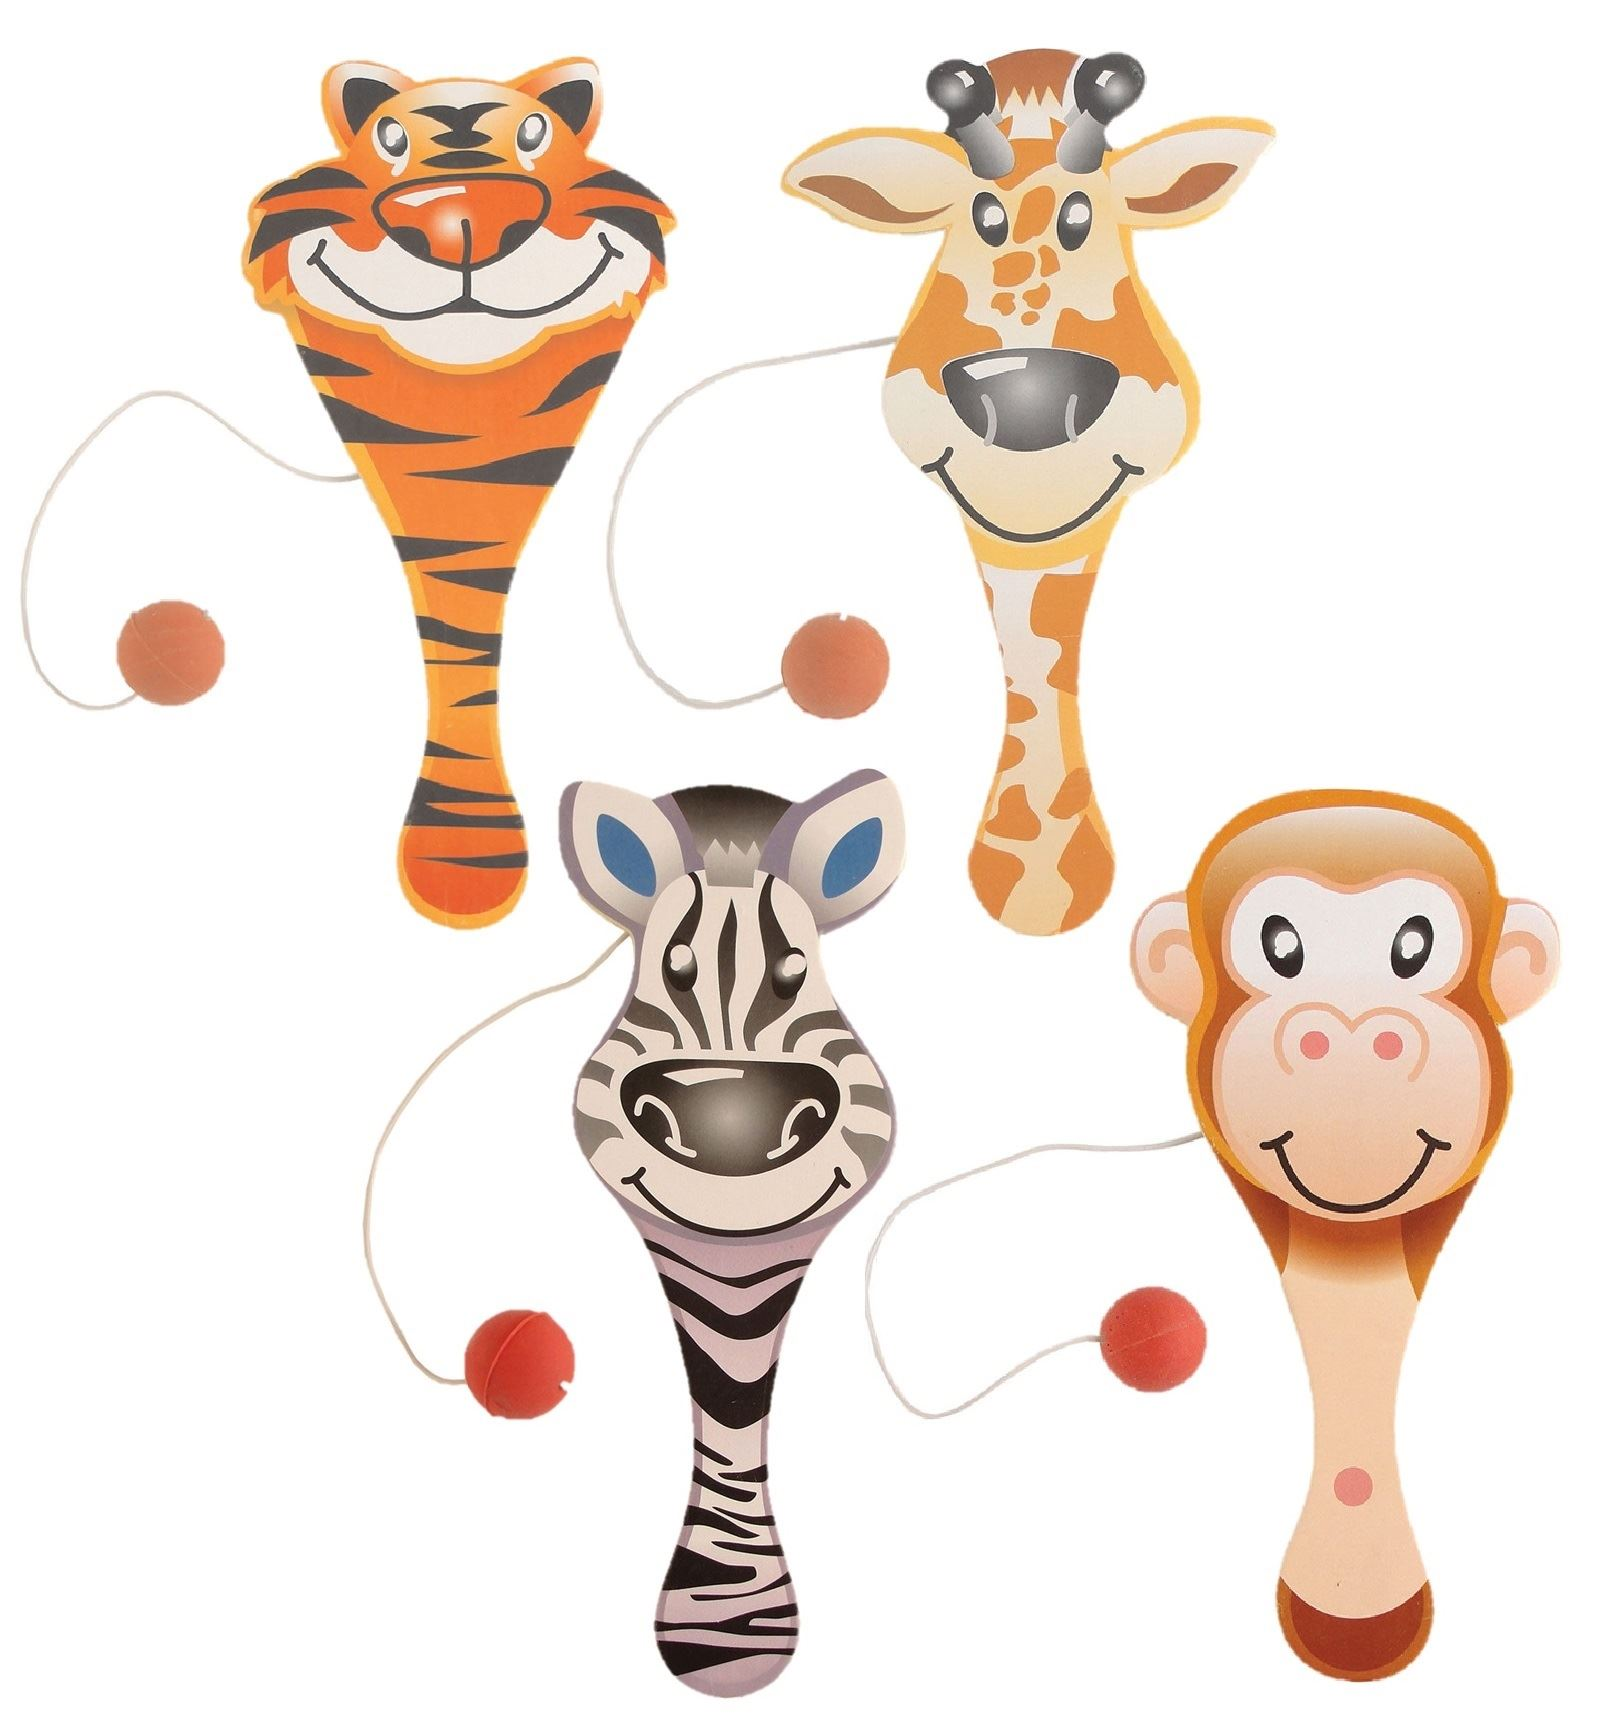 Details About Biff Bats Zoo Animals Wooden Party Favor Stocking Filler Toys